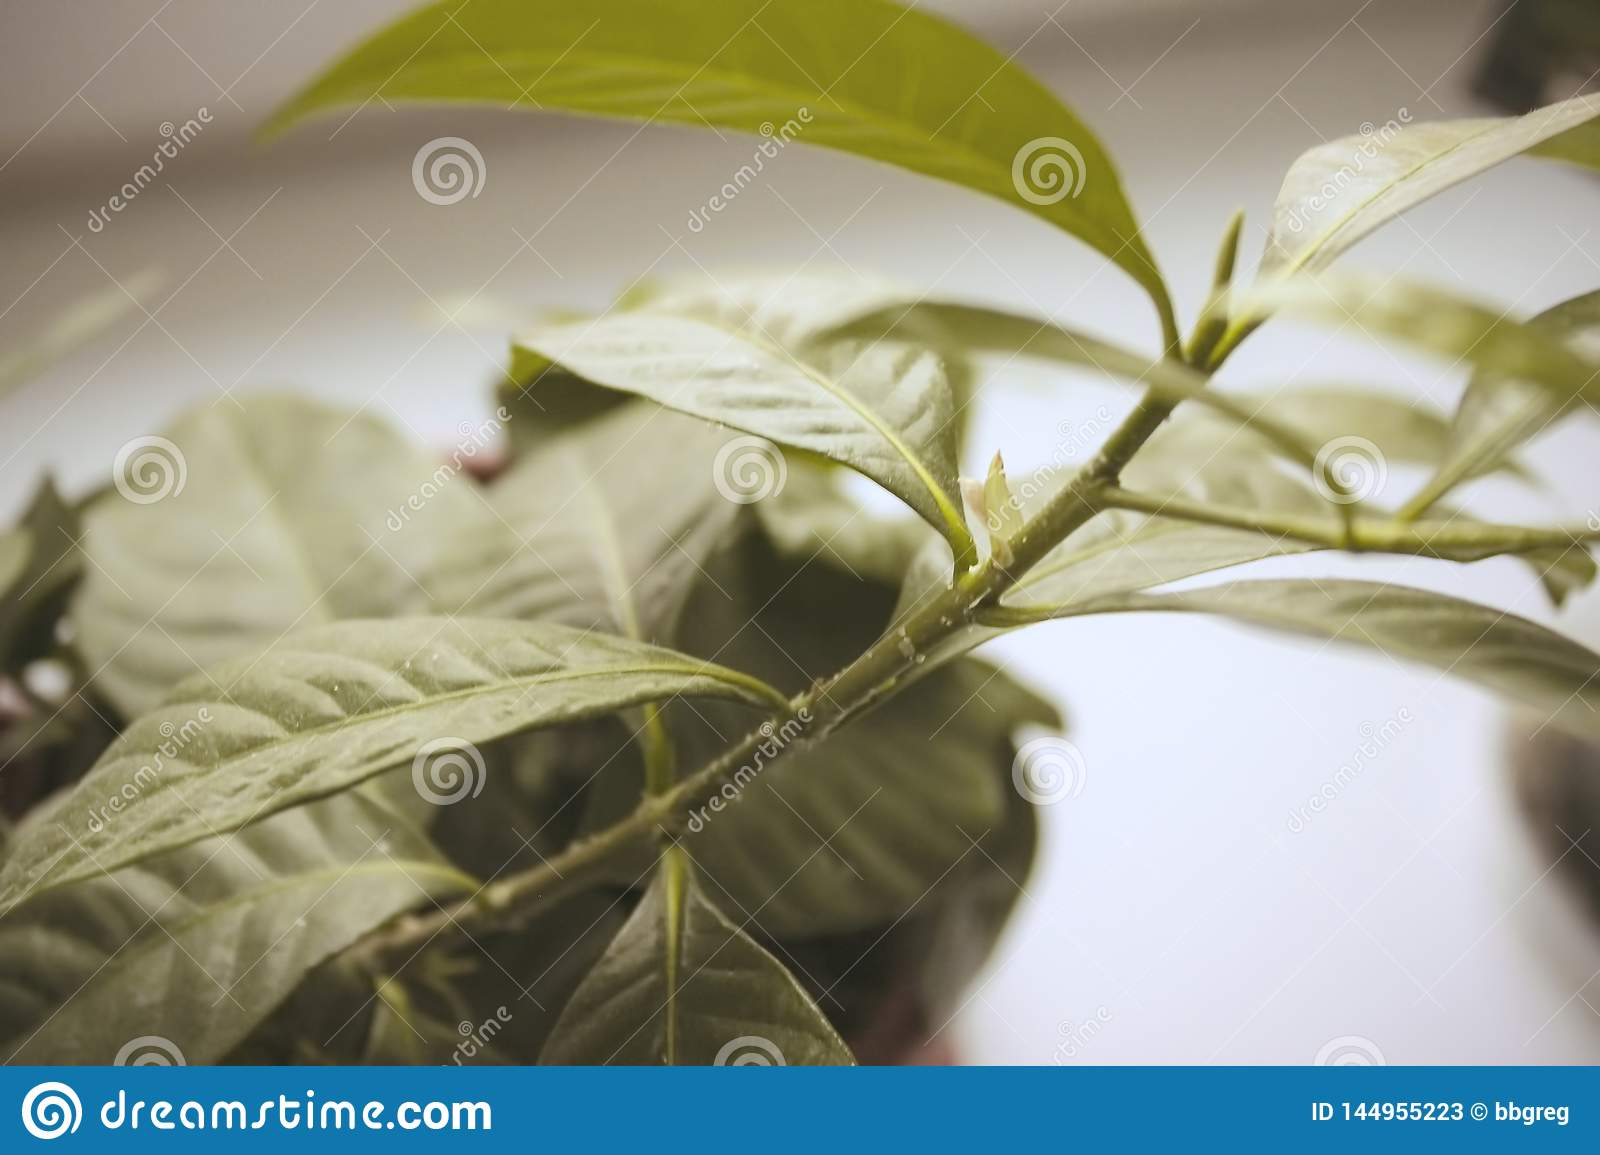 Large Leaves Indoor Plant Closeup In Soft Blurred Style For Background Stock Image Image Of Green Interior 144955223